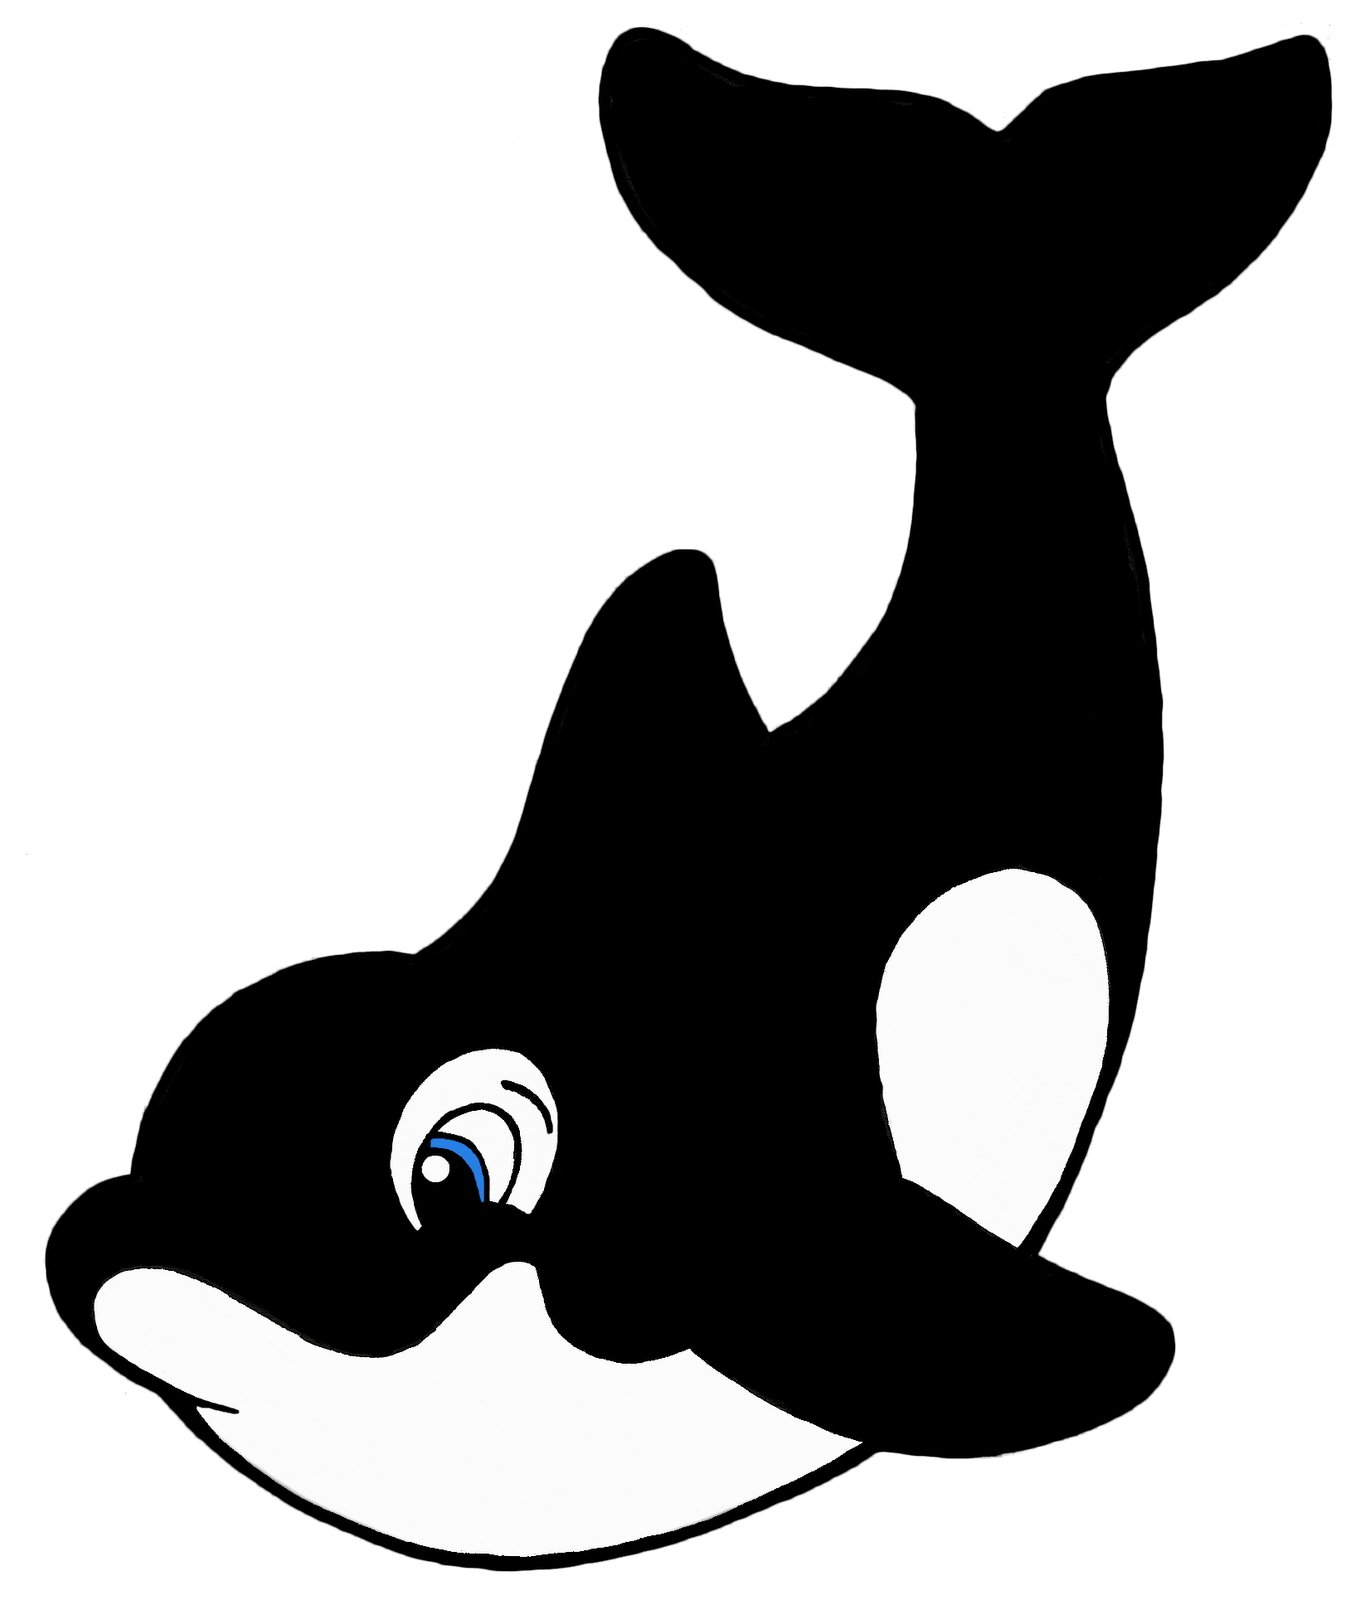 Orca clipart real whale. Black and white free